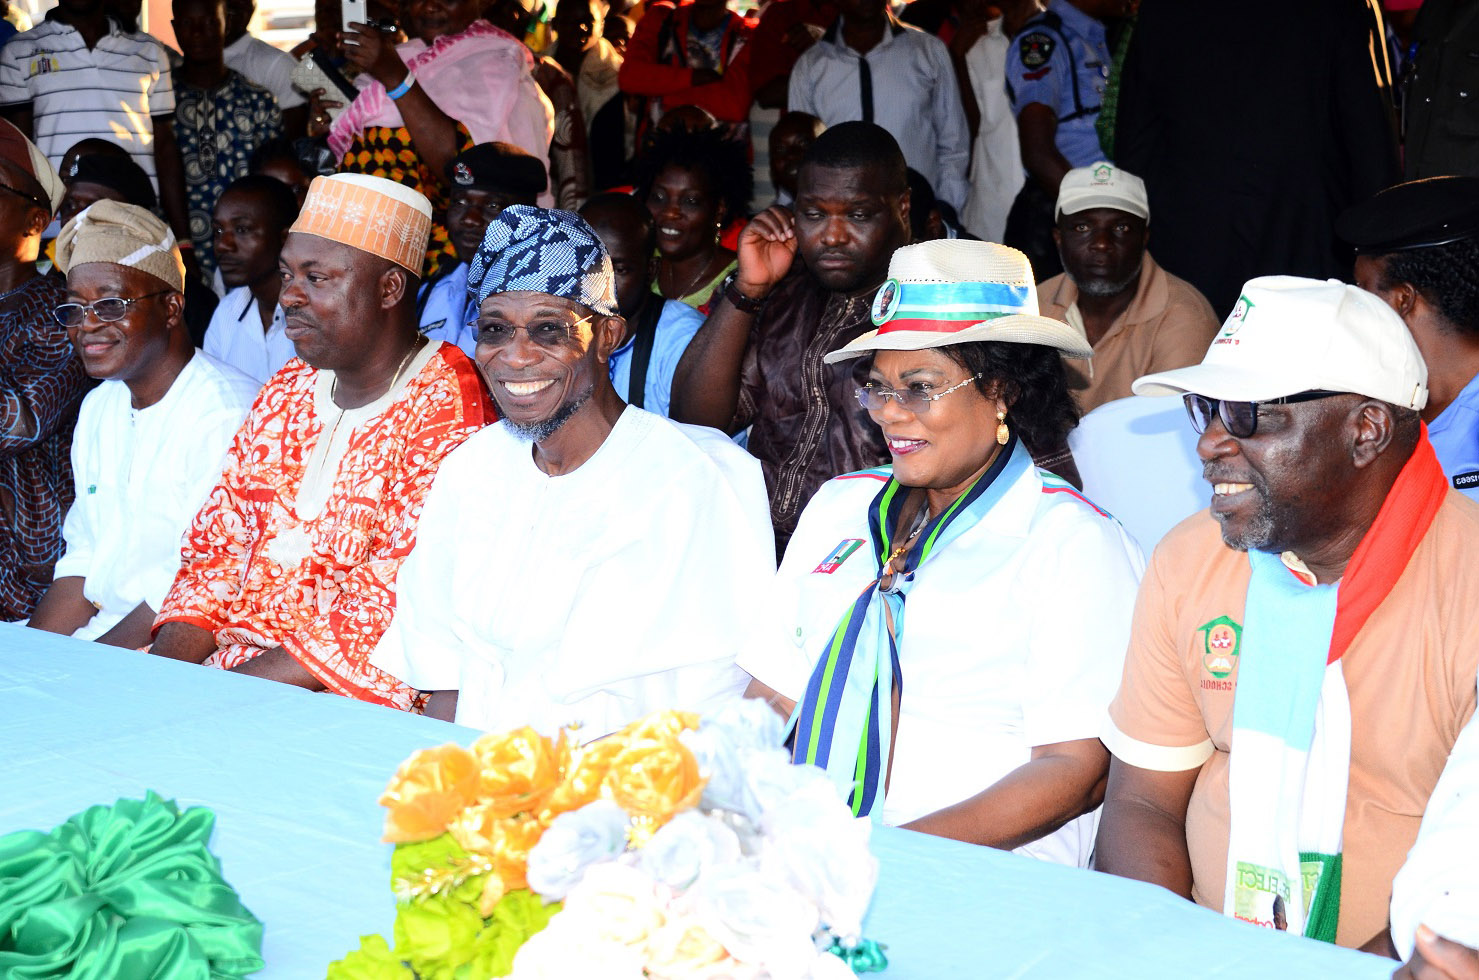 From right, Chairman, Osun Schools Infrastructure Development Committee (O'School), Otunba Lai Oyeduntan; Deputy Governor, Mrs Titi Laoye-Tomori; Governor Rauf Aregbesola; Leader, Osun House of Assembly, Honourable Timothy Owoeye; Chief of Staff, Alhaji Gboyega Oyetola and others, during the commissioning of Local Authority (L.A) Elementary School, Imo, Ilesa on Friday 18-07-2014